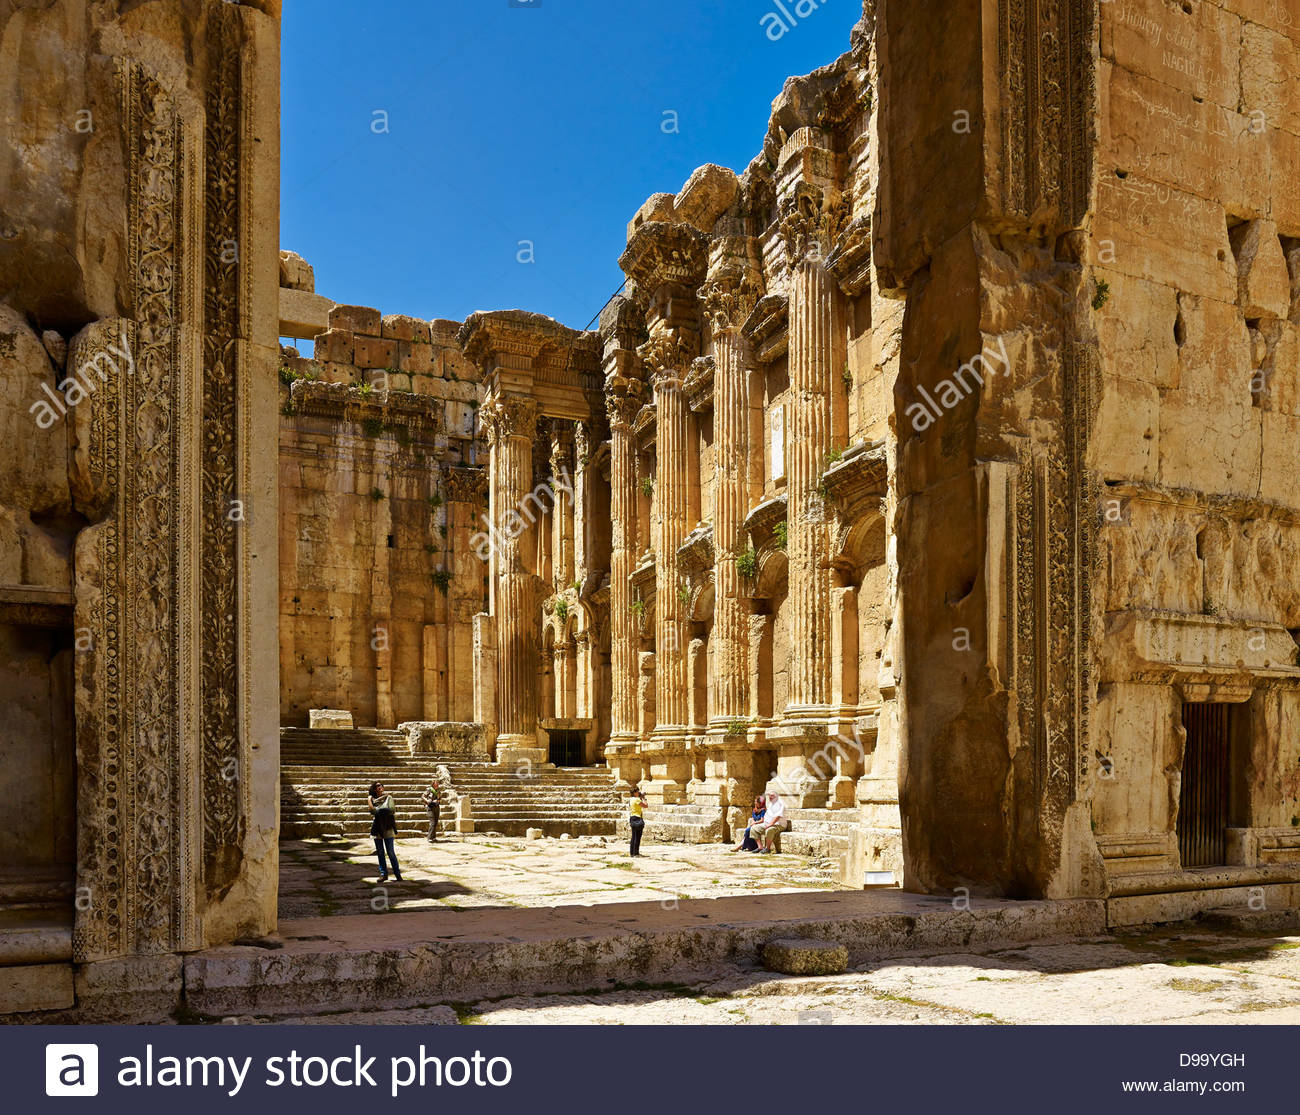 Temple of Bacchus Baalbek, Interior of Temple of Bacchus in ancient city of Baalbek, Lebanon ...